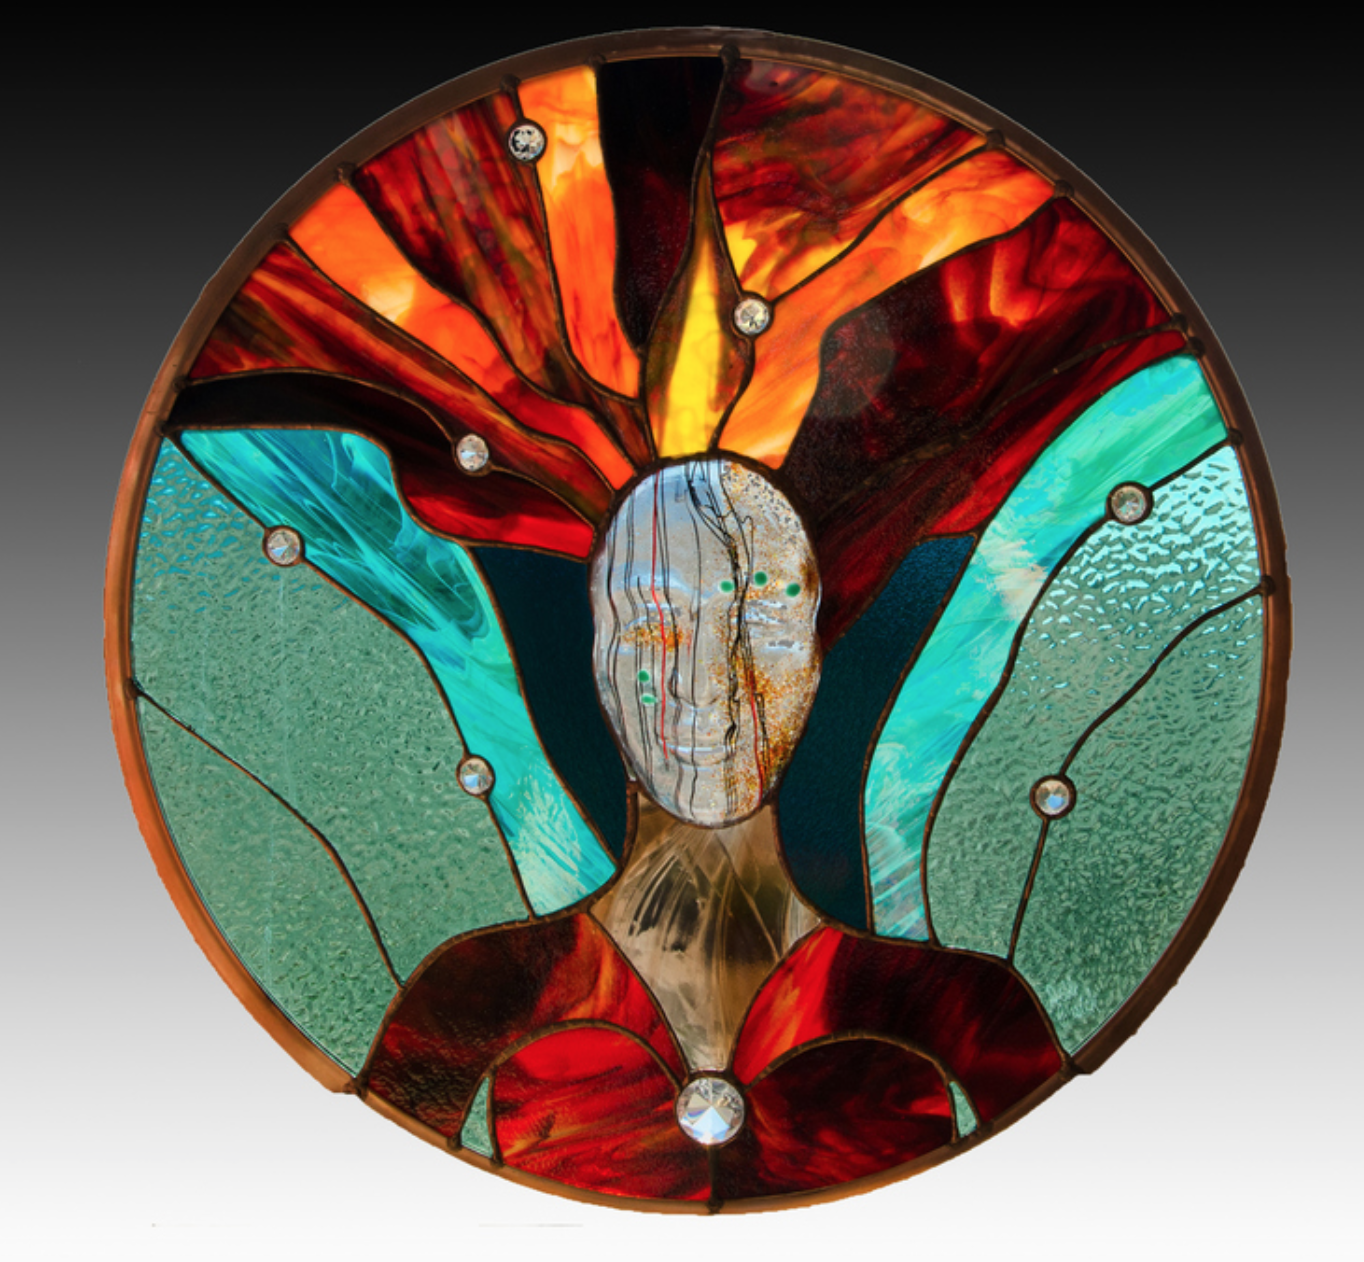 Debb Cusick - http://runningwolfstudio.comStained glass & kiln formed glass, in a contemporary, sculptural or abstract design.